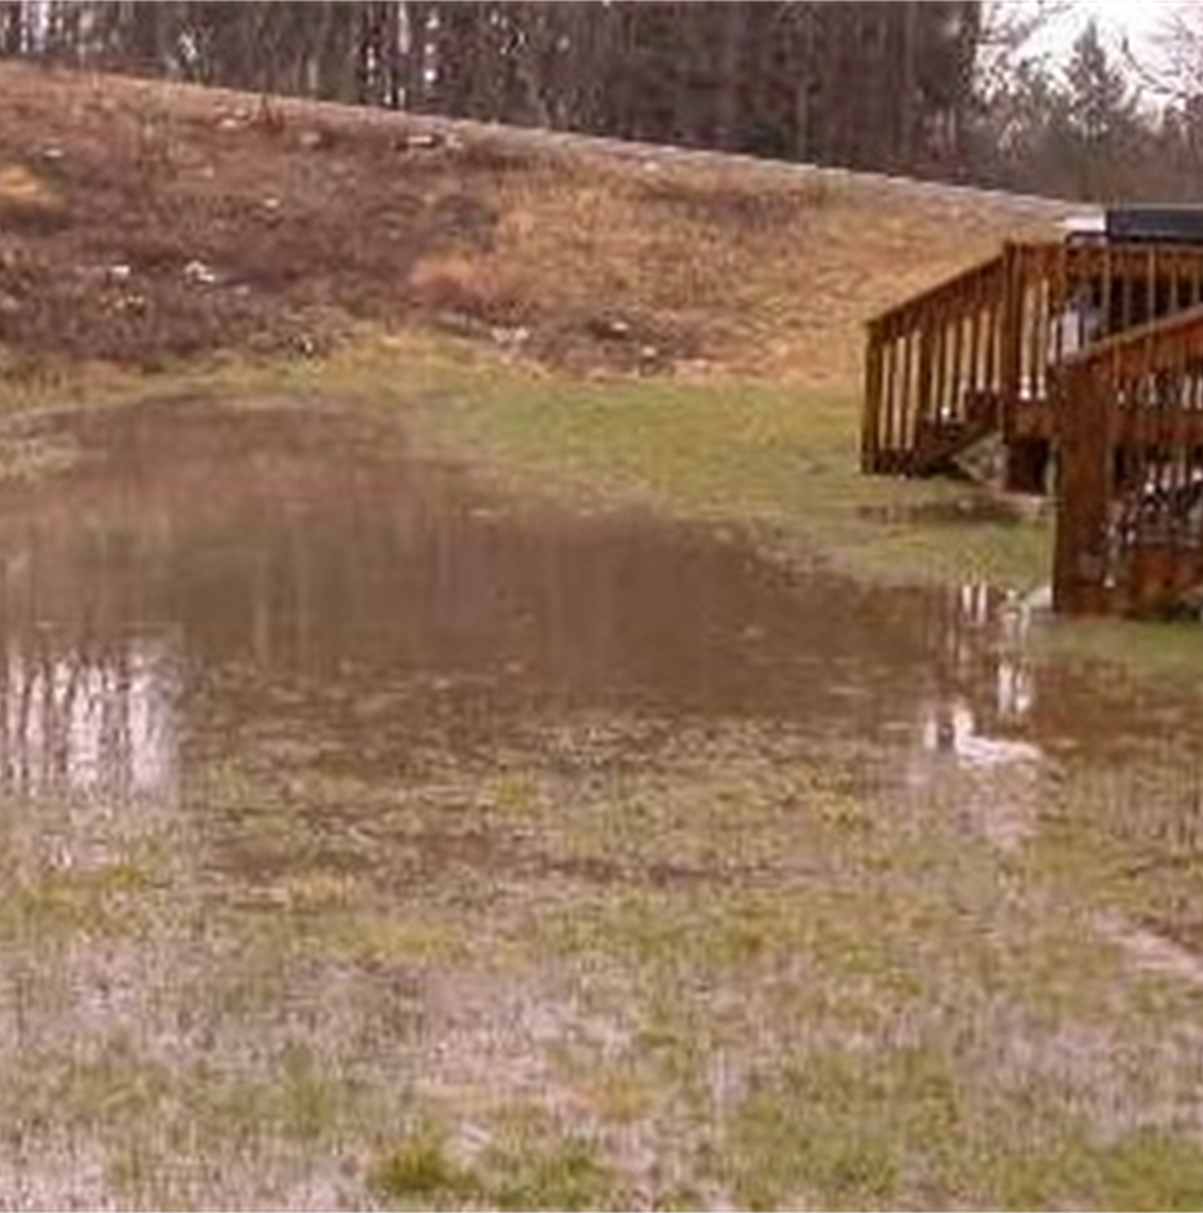 Top Ten House Problems drainage and improper surface grading causing a backyard or the basement to flood